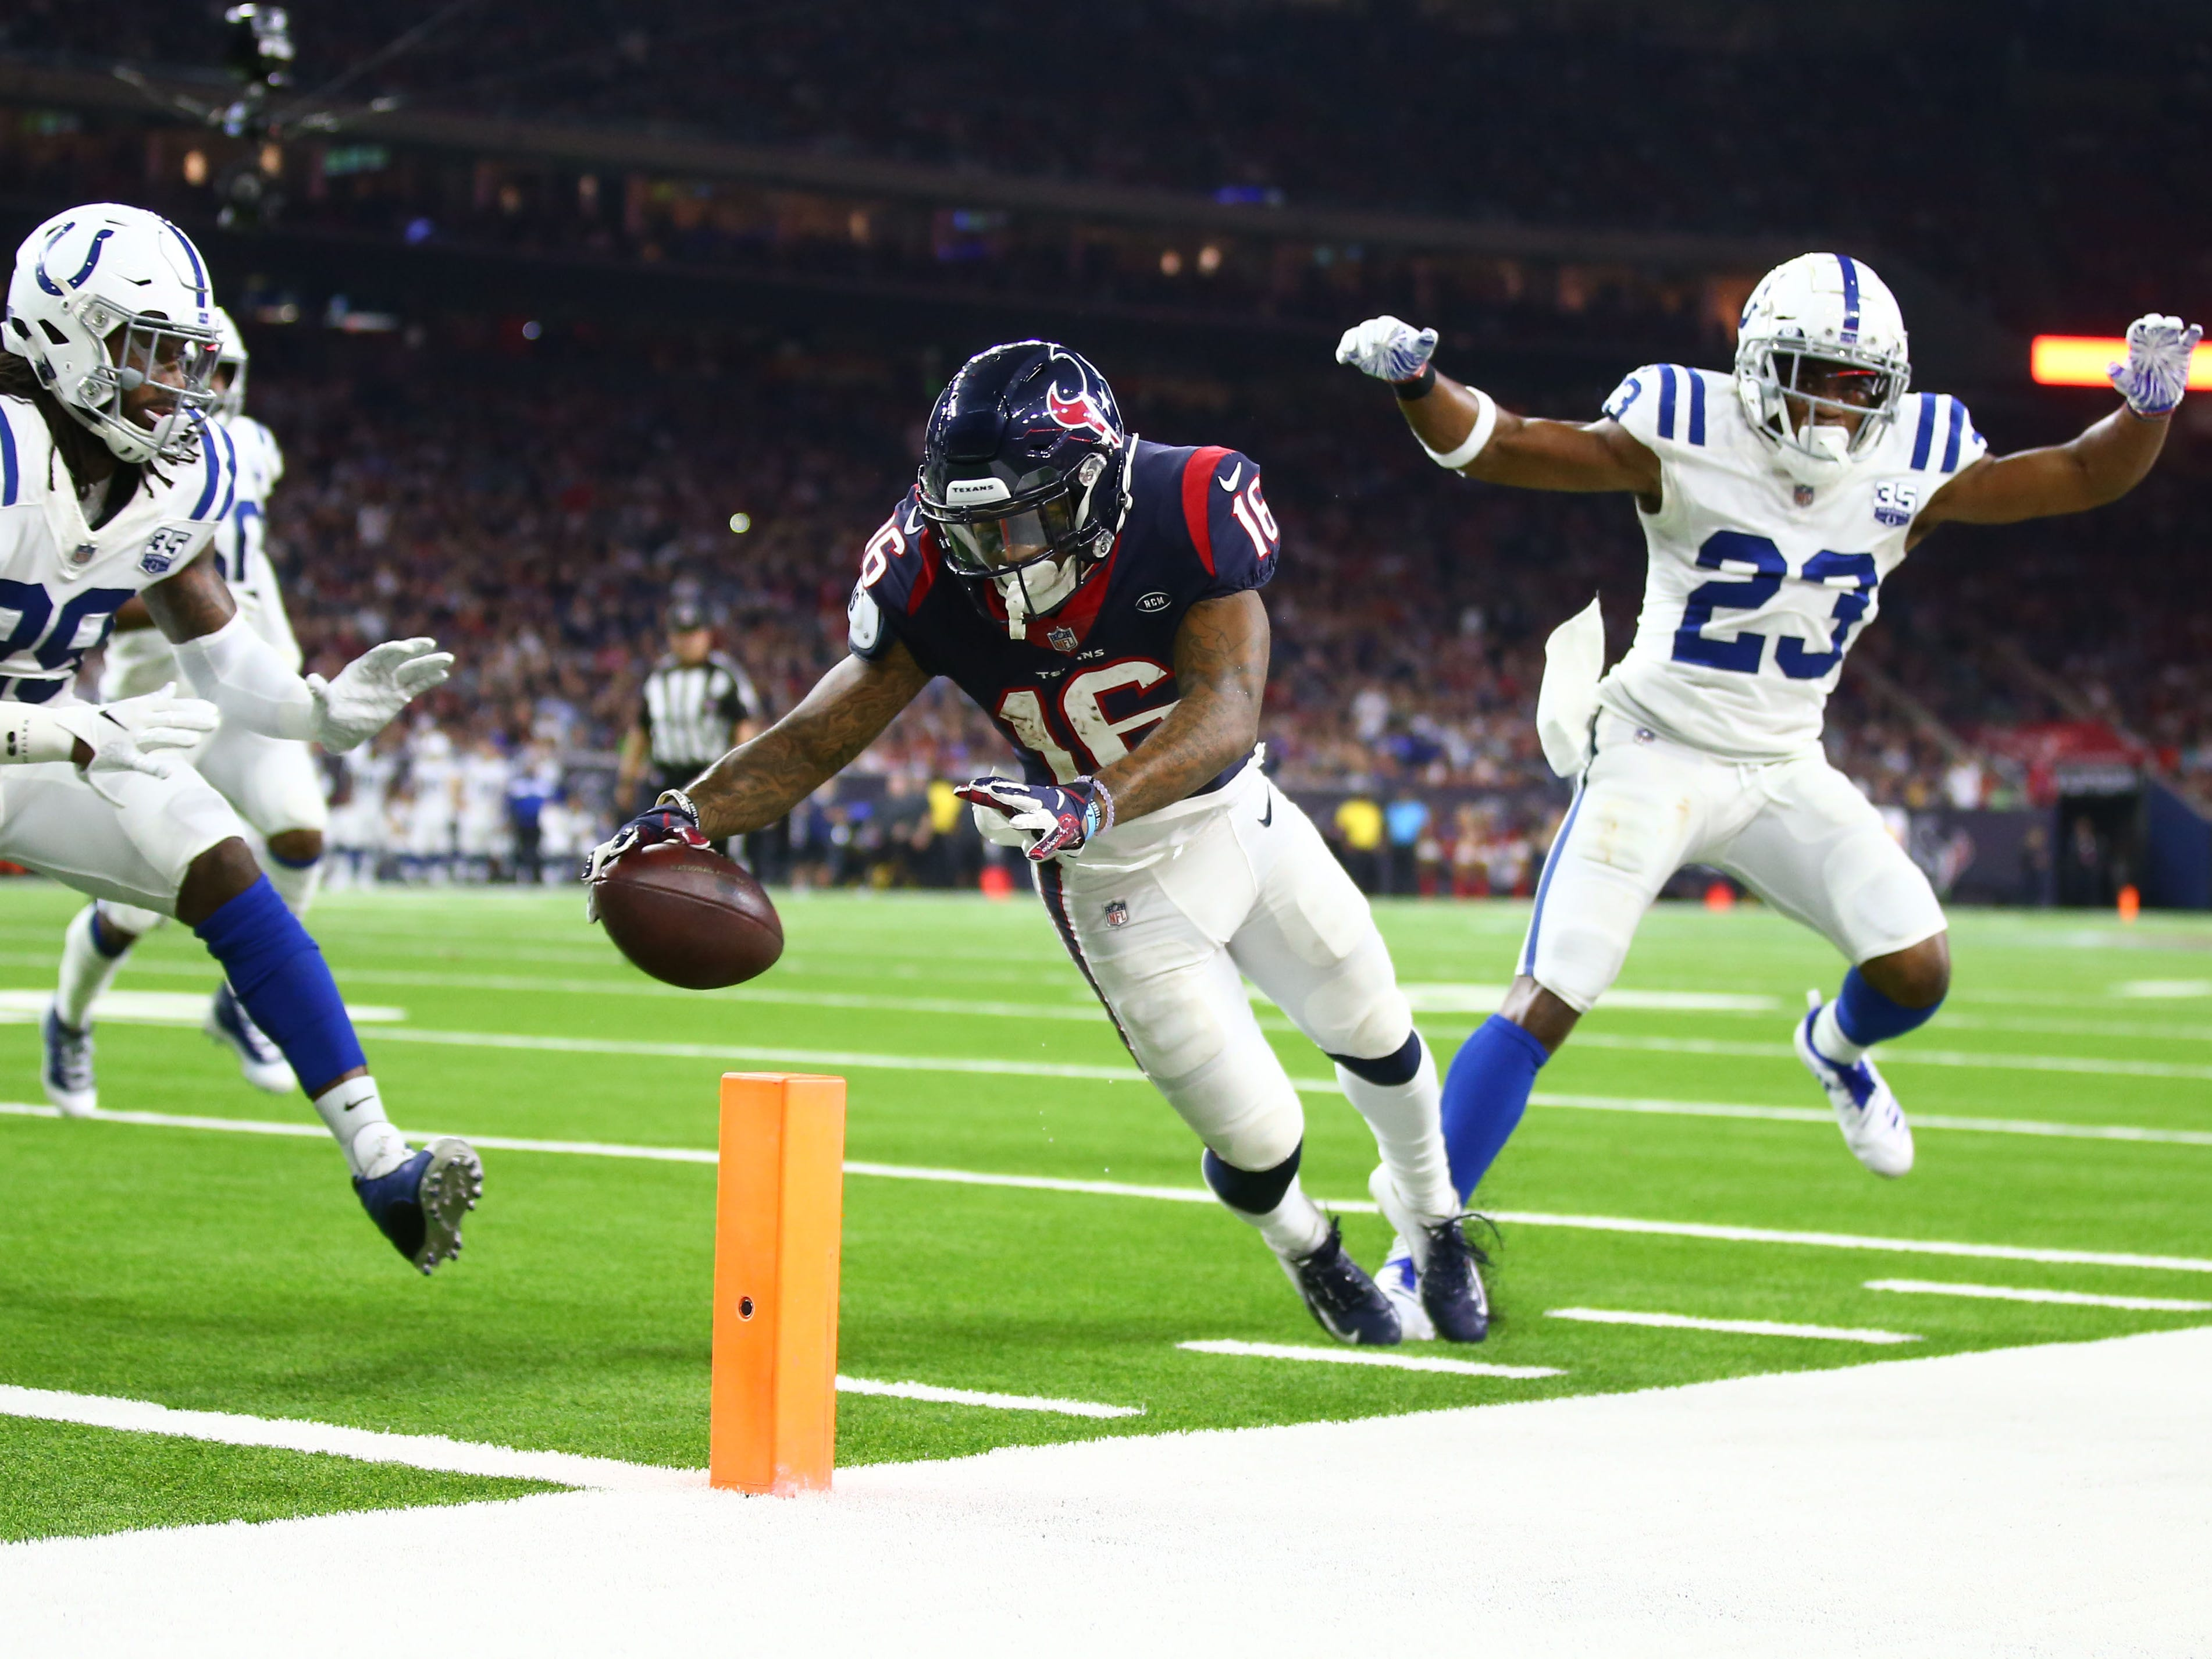 Wild-card playoffs: Houston Texans wide receiver Keke Coutee scores a touchdown against the Indianapolis Colts. The Colts won the game, 21-7.